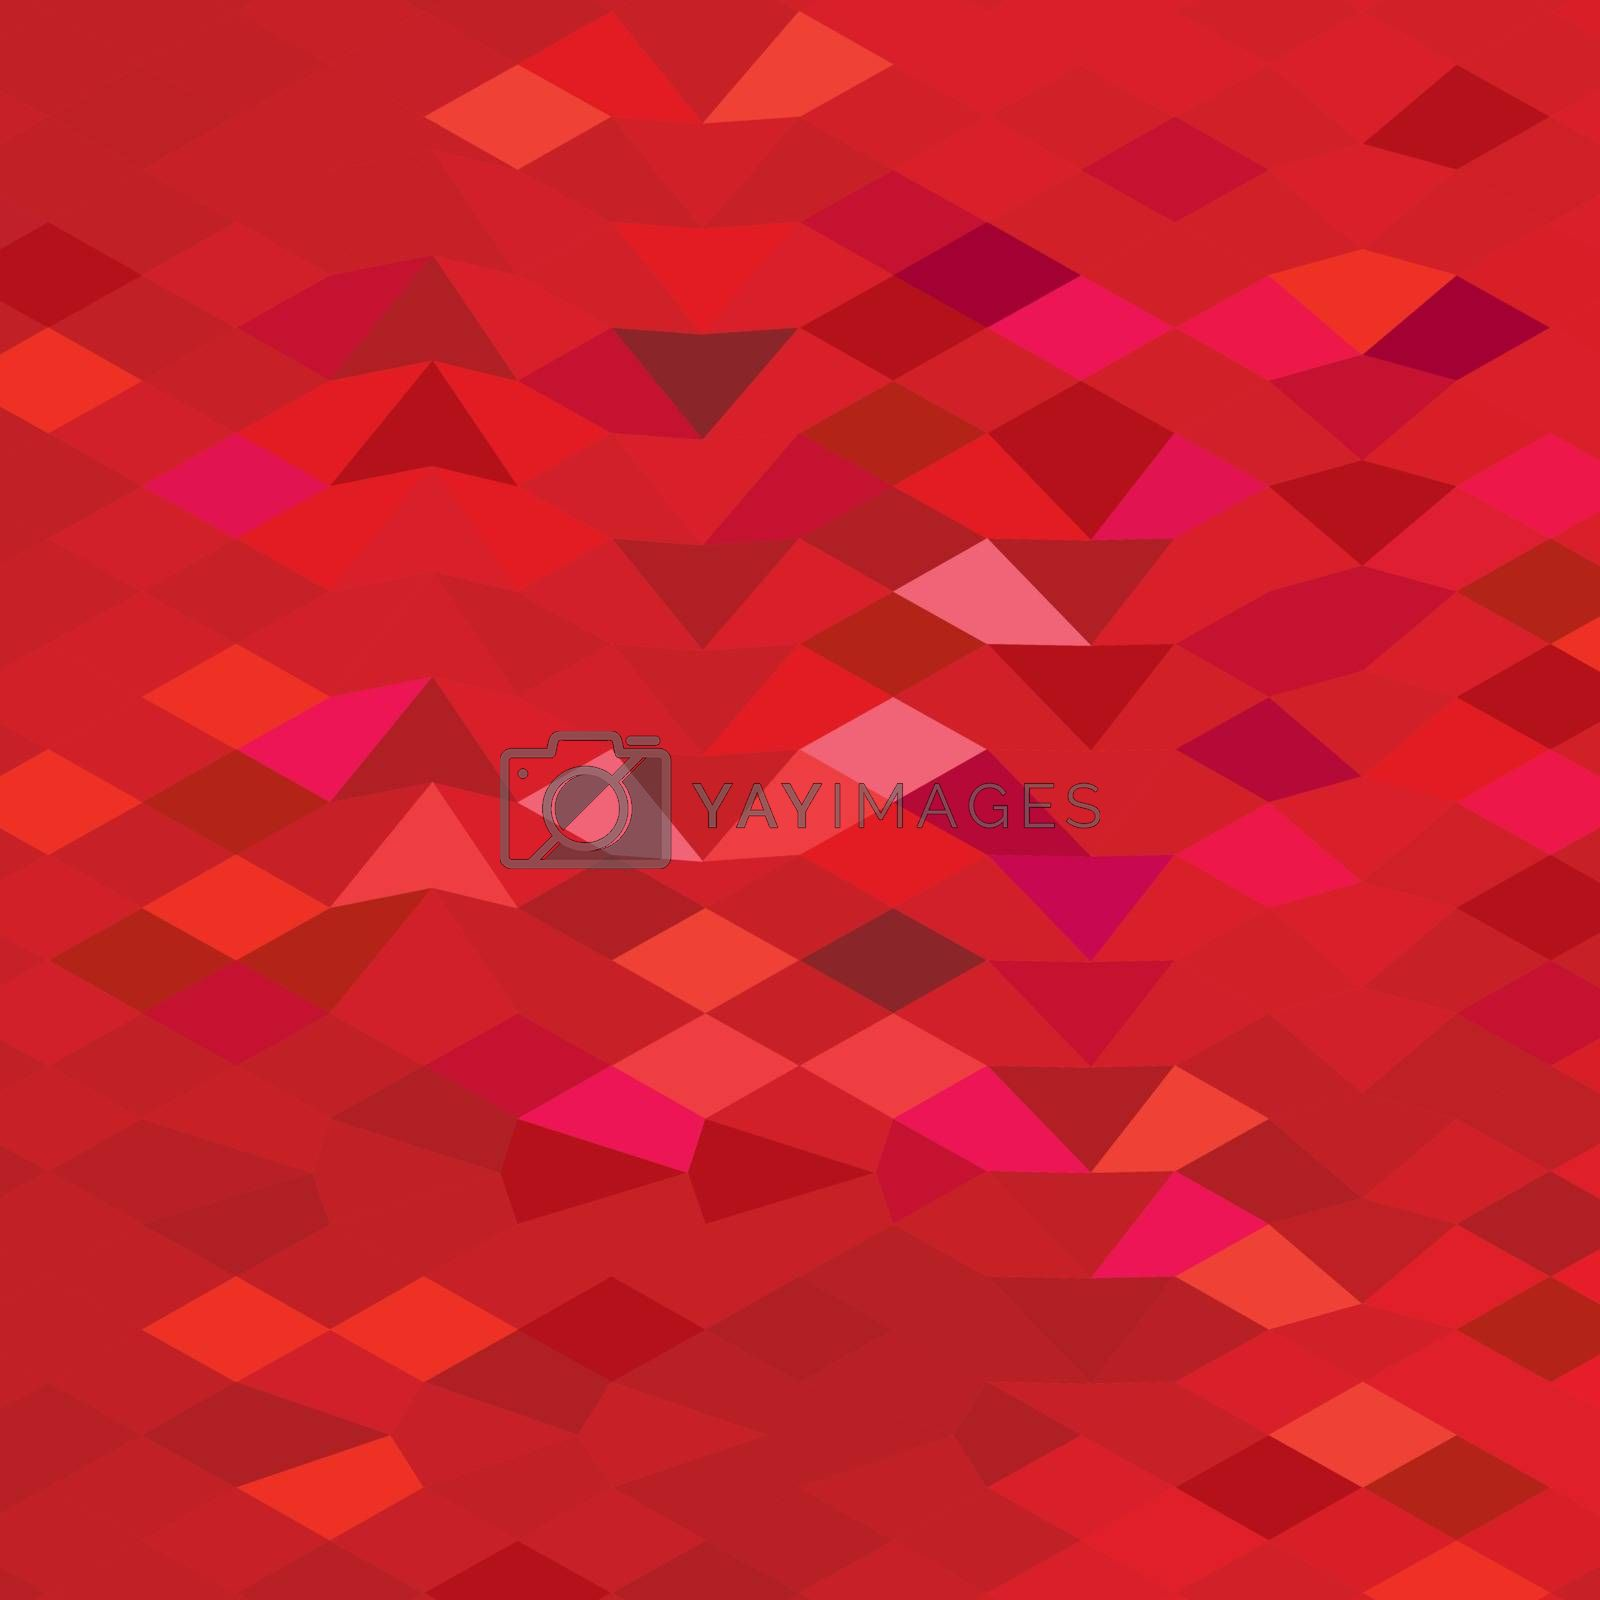 Low polygon style illustration of an imperial red abstract geometric background.